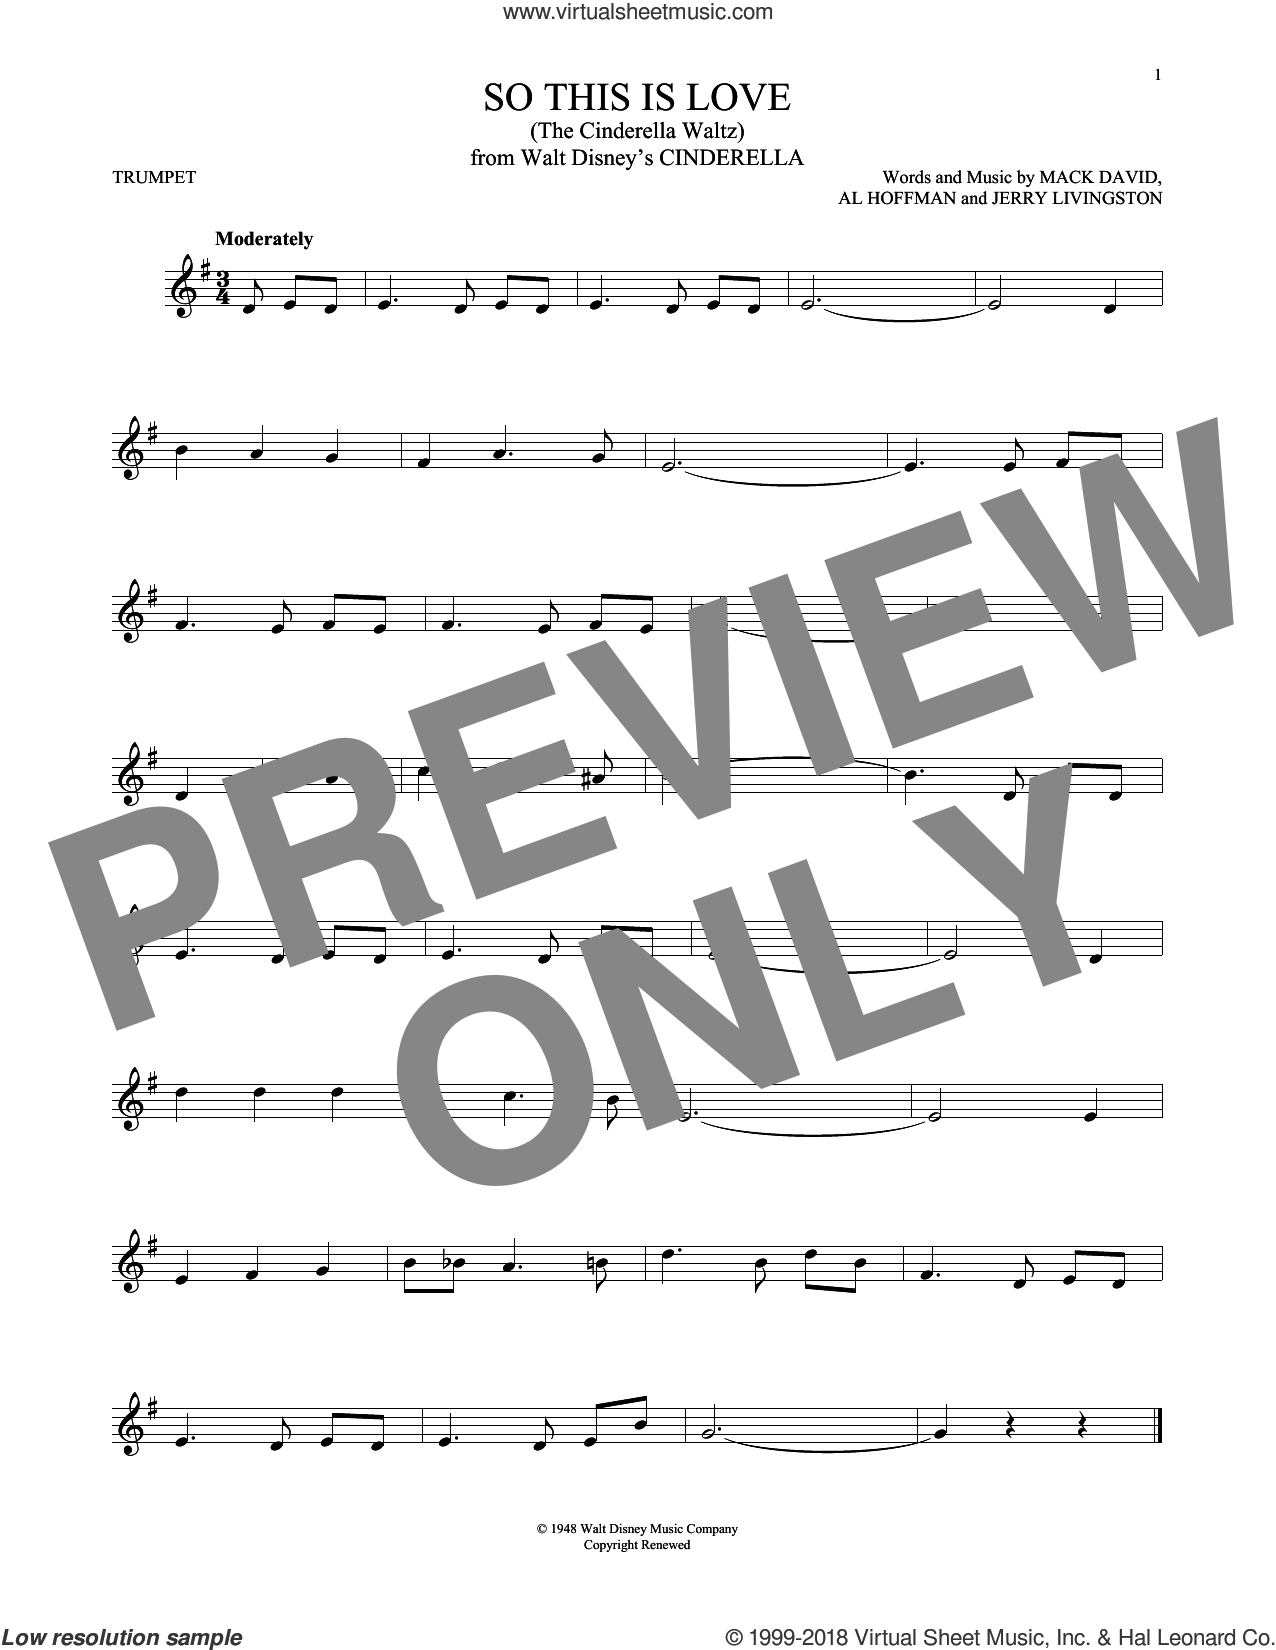 So This Is Love sheet music for trumpet solo by Al Hoffman, James Ingram, Jerry Livingston, Mack David and Mack David, Al Hoffman and Jerry Livingston, intermediate skill level